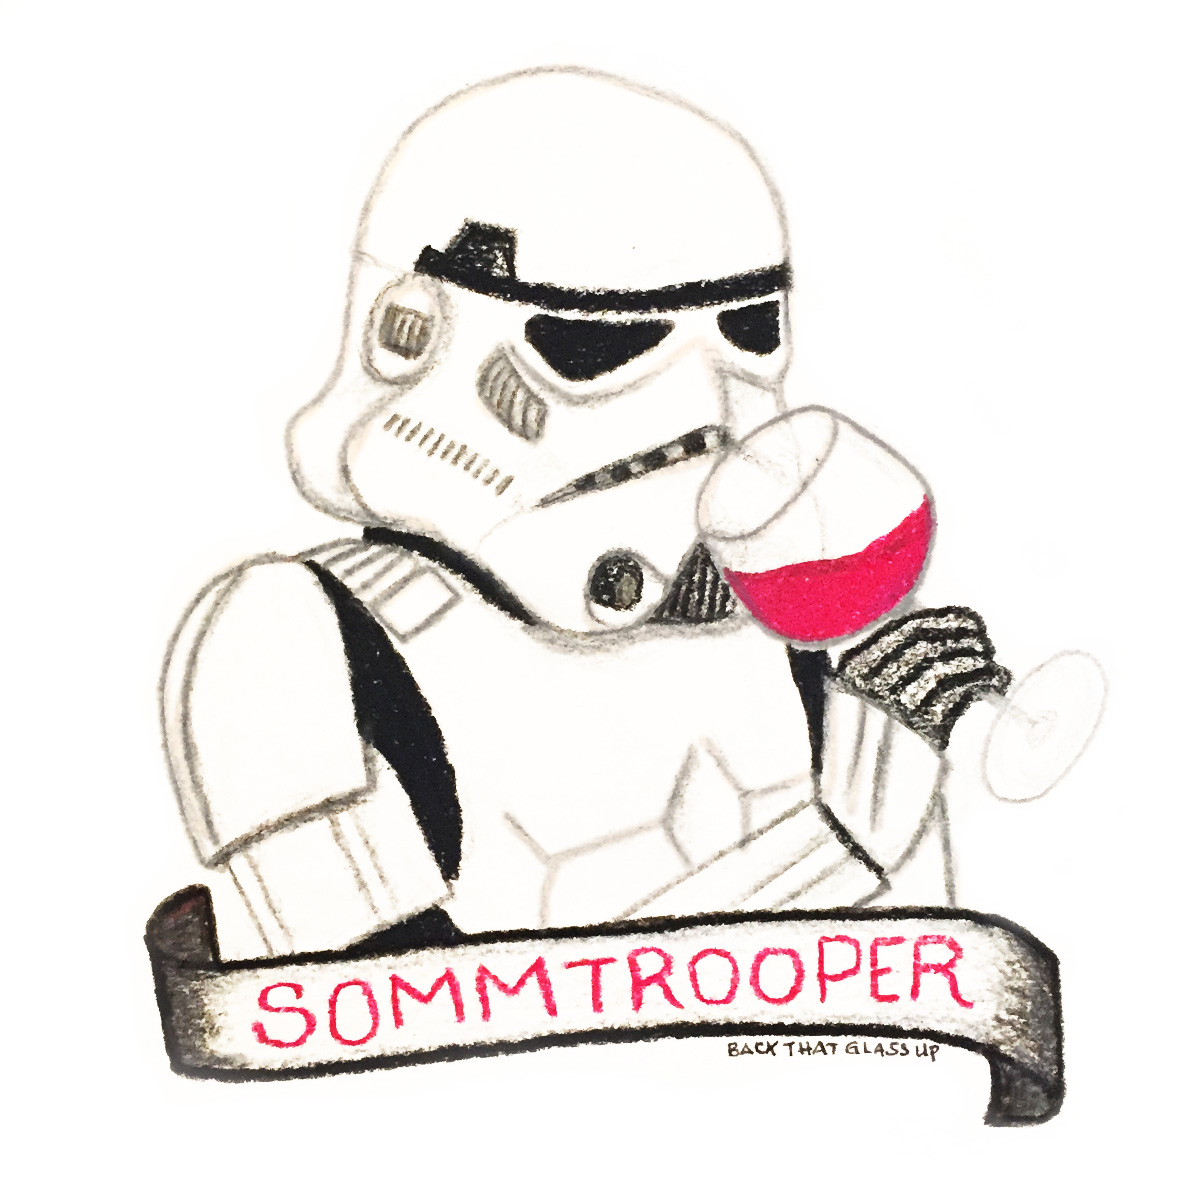 Back That Glass Up Star Wars Sommtrooper